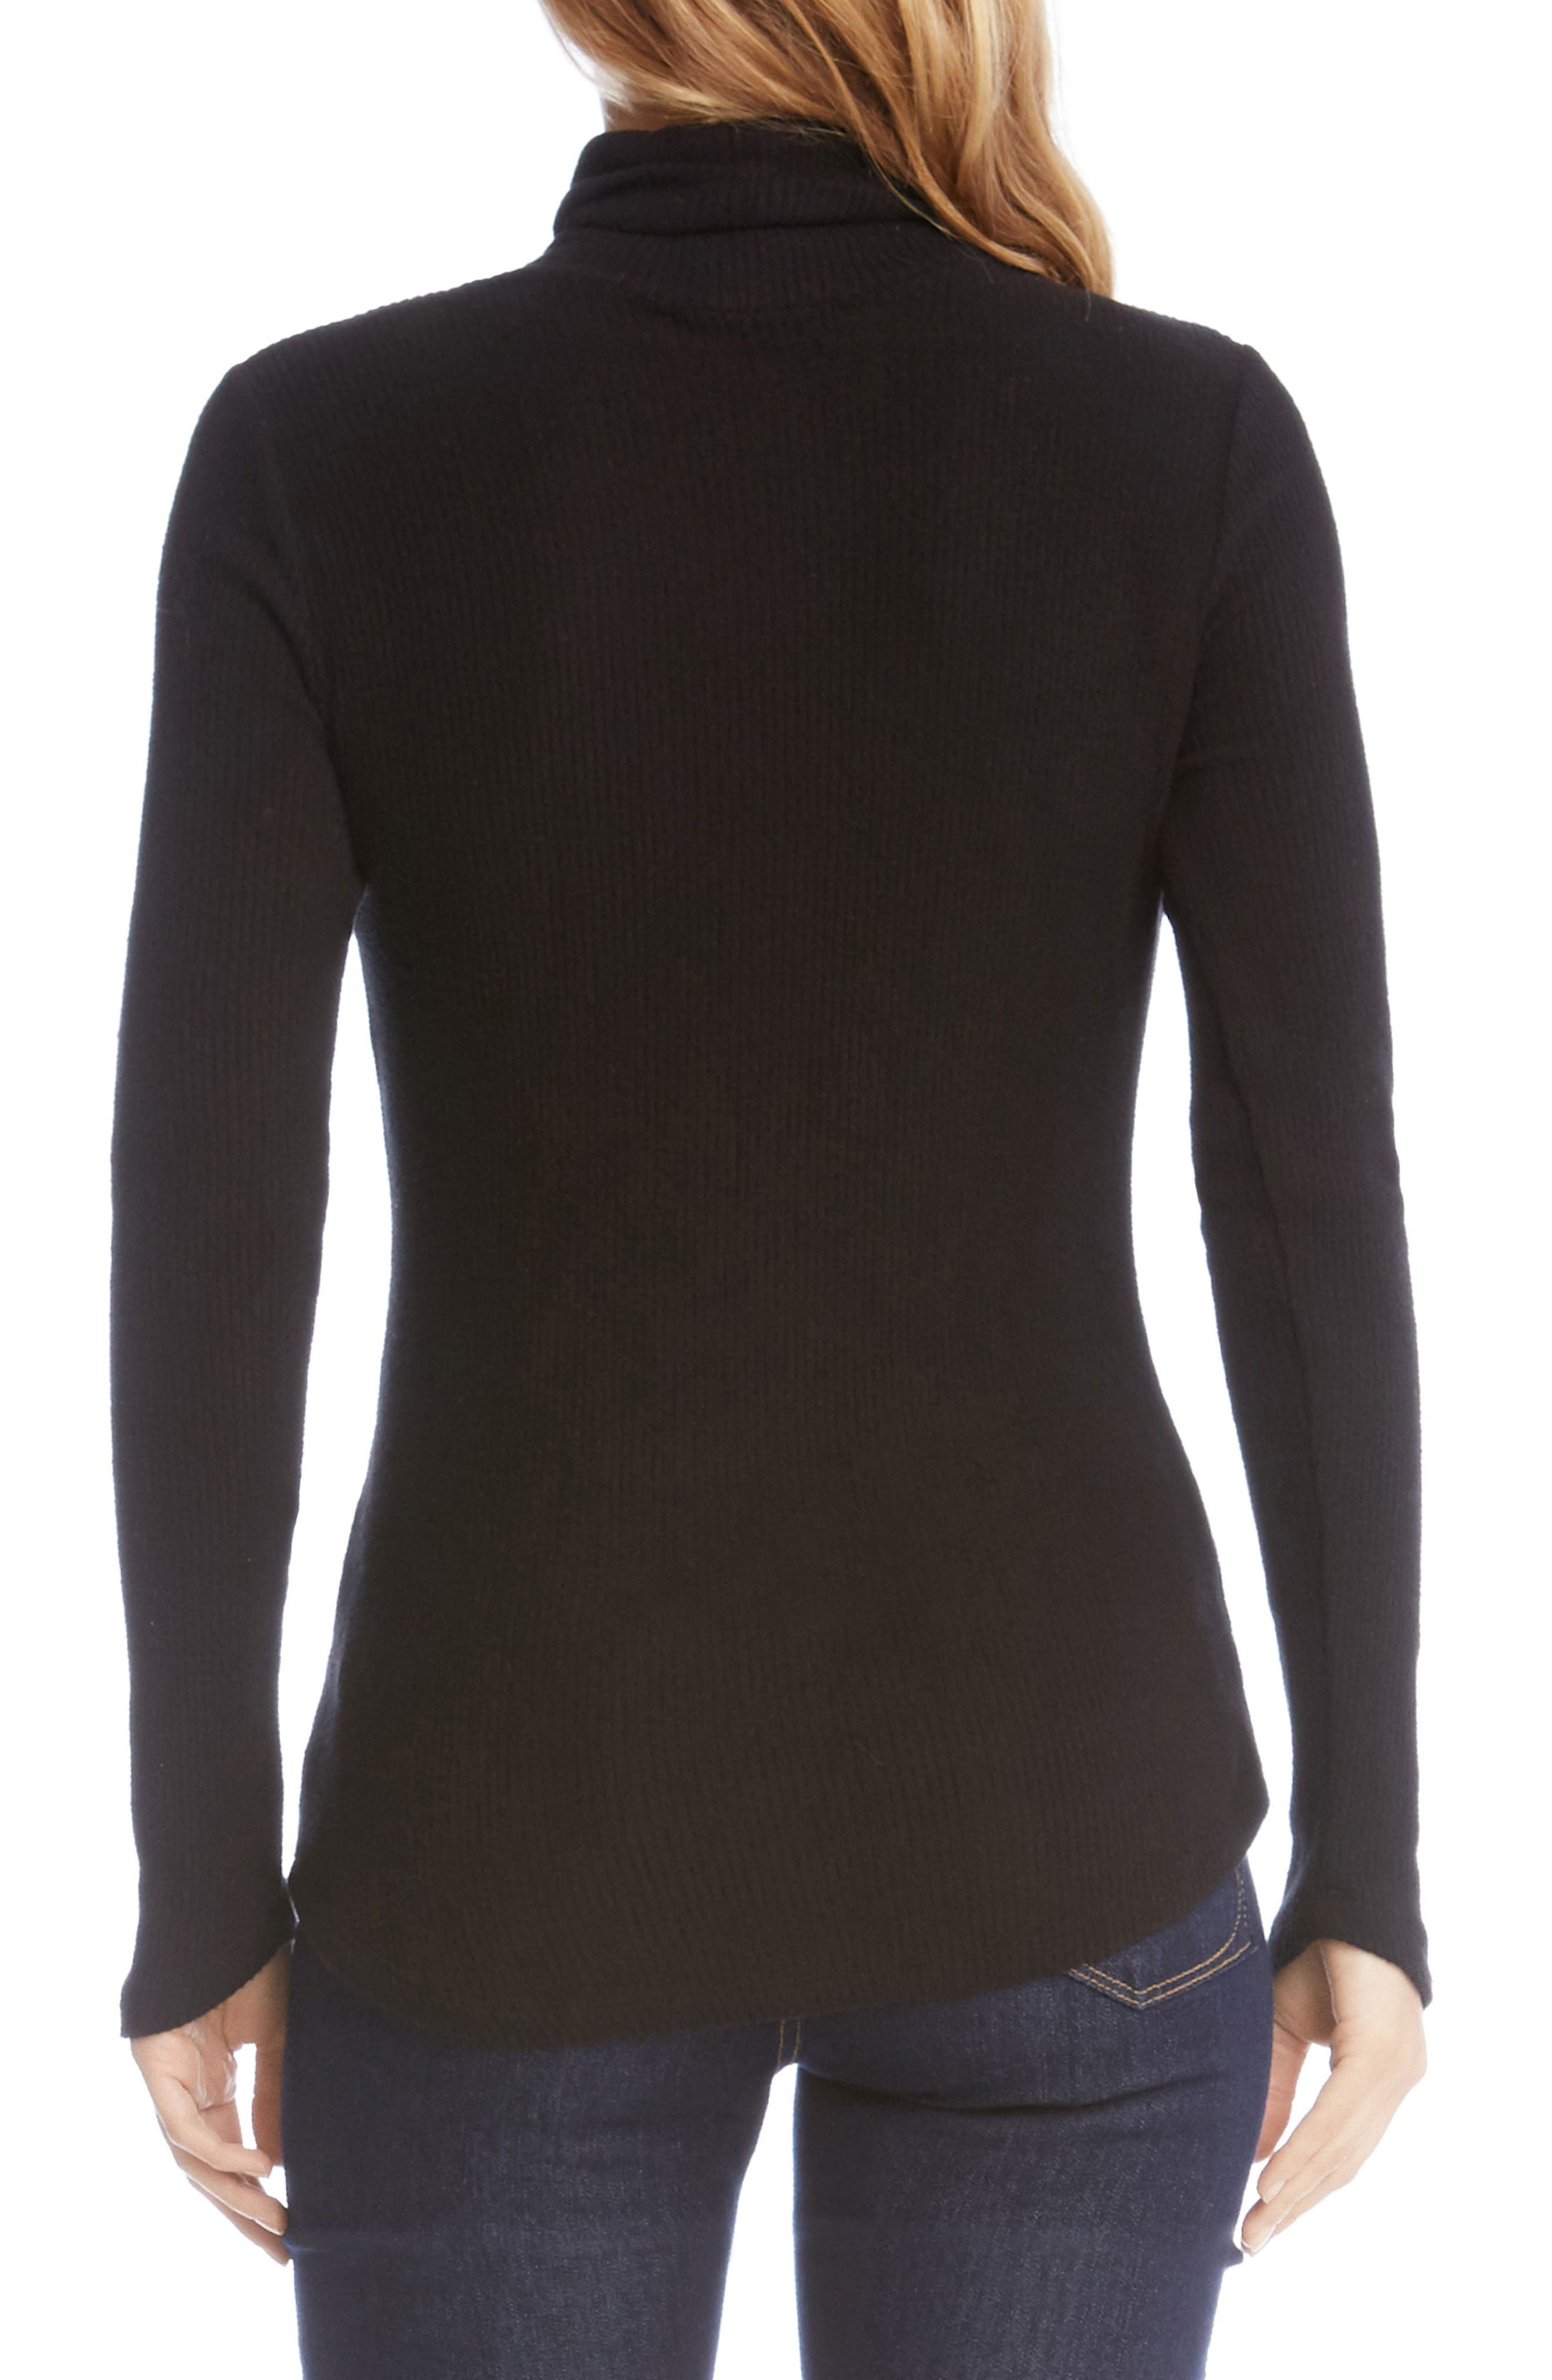 Alternate Image 2  - Karen Kane Angled Sleeve Turtleneck